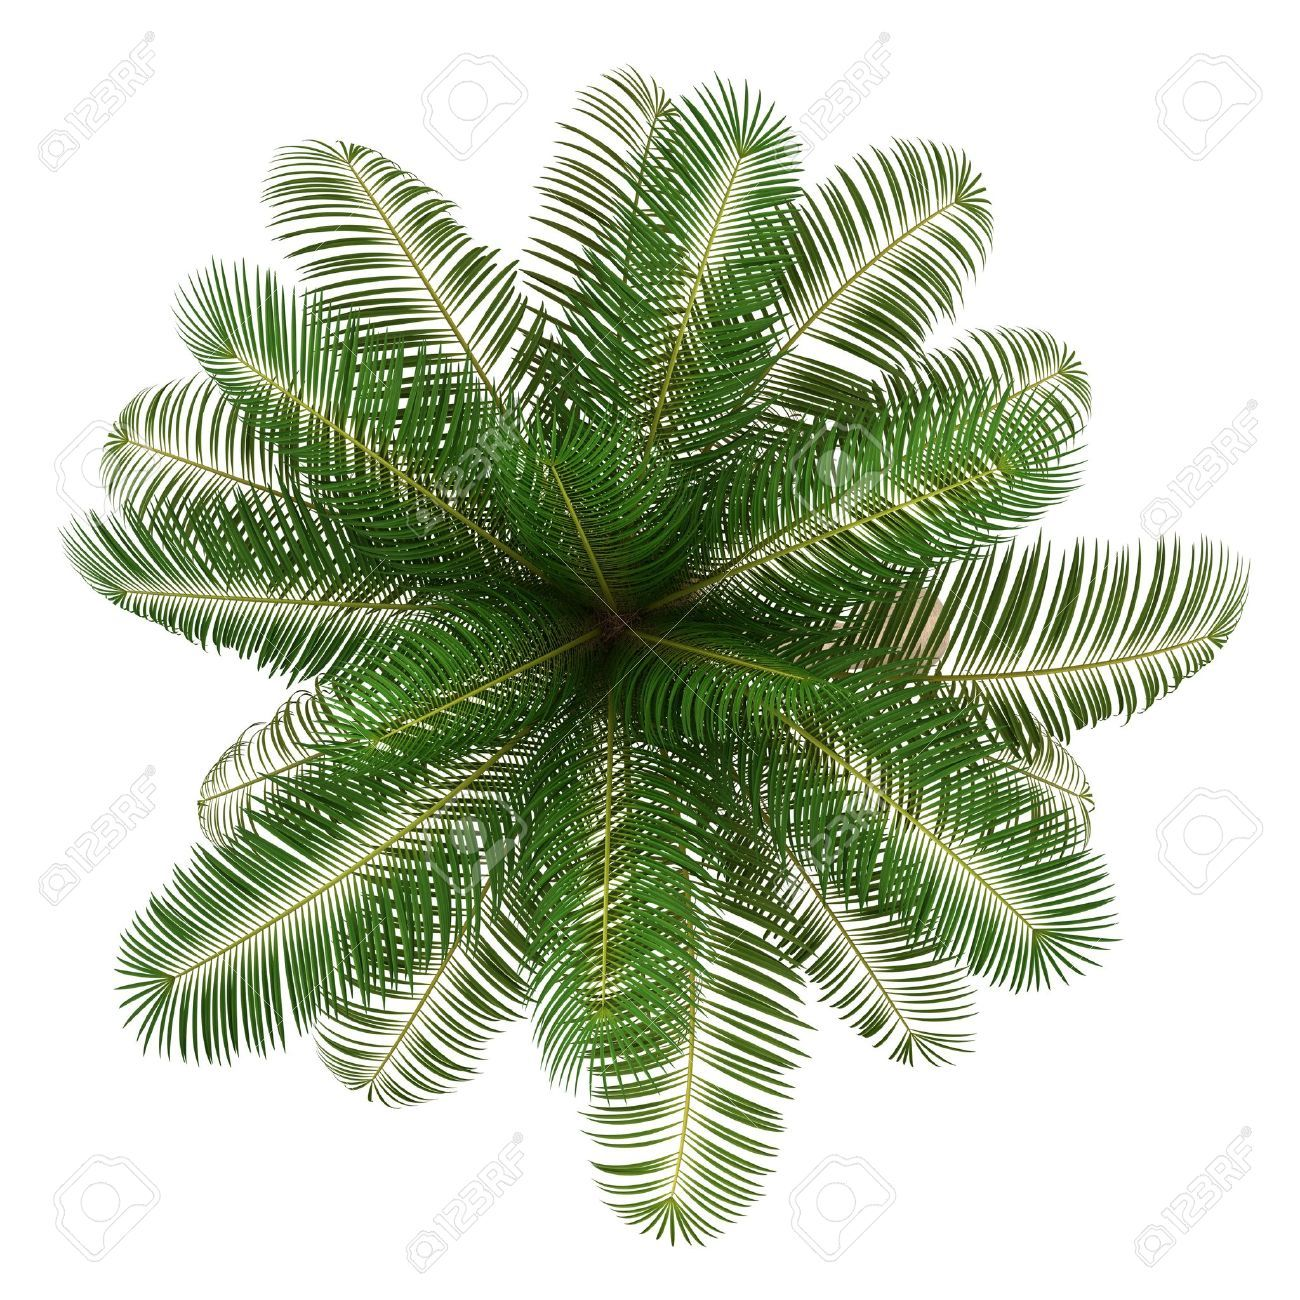 7 Awesome Tree Plan View Png Images Photoshop Pohon Daun